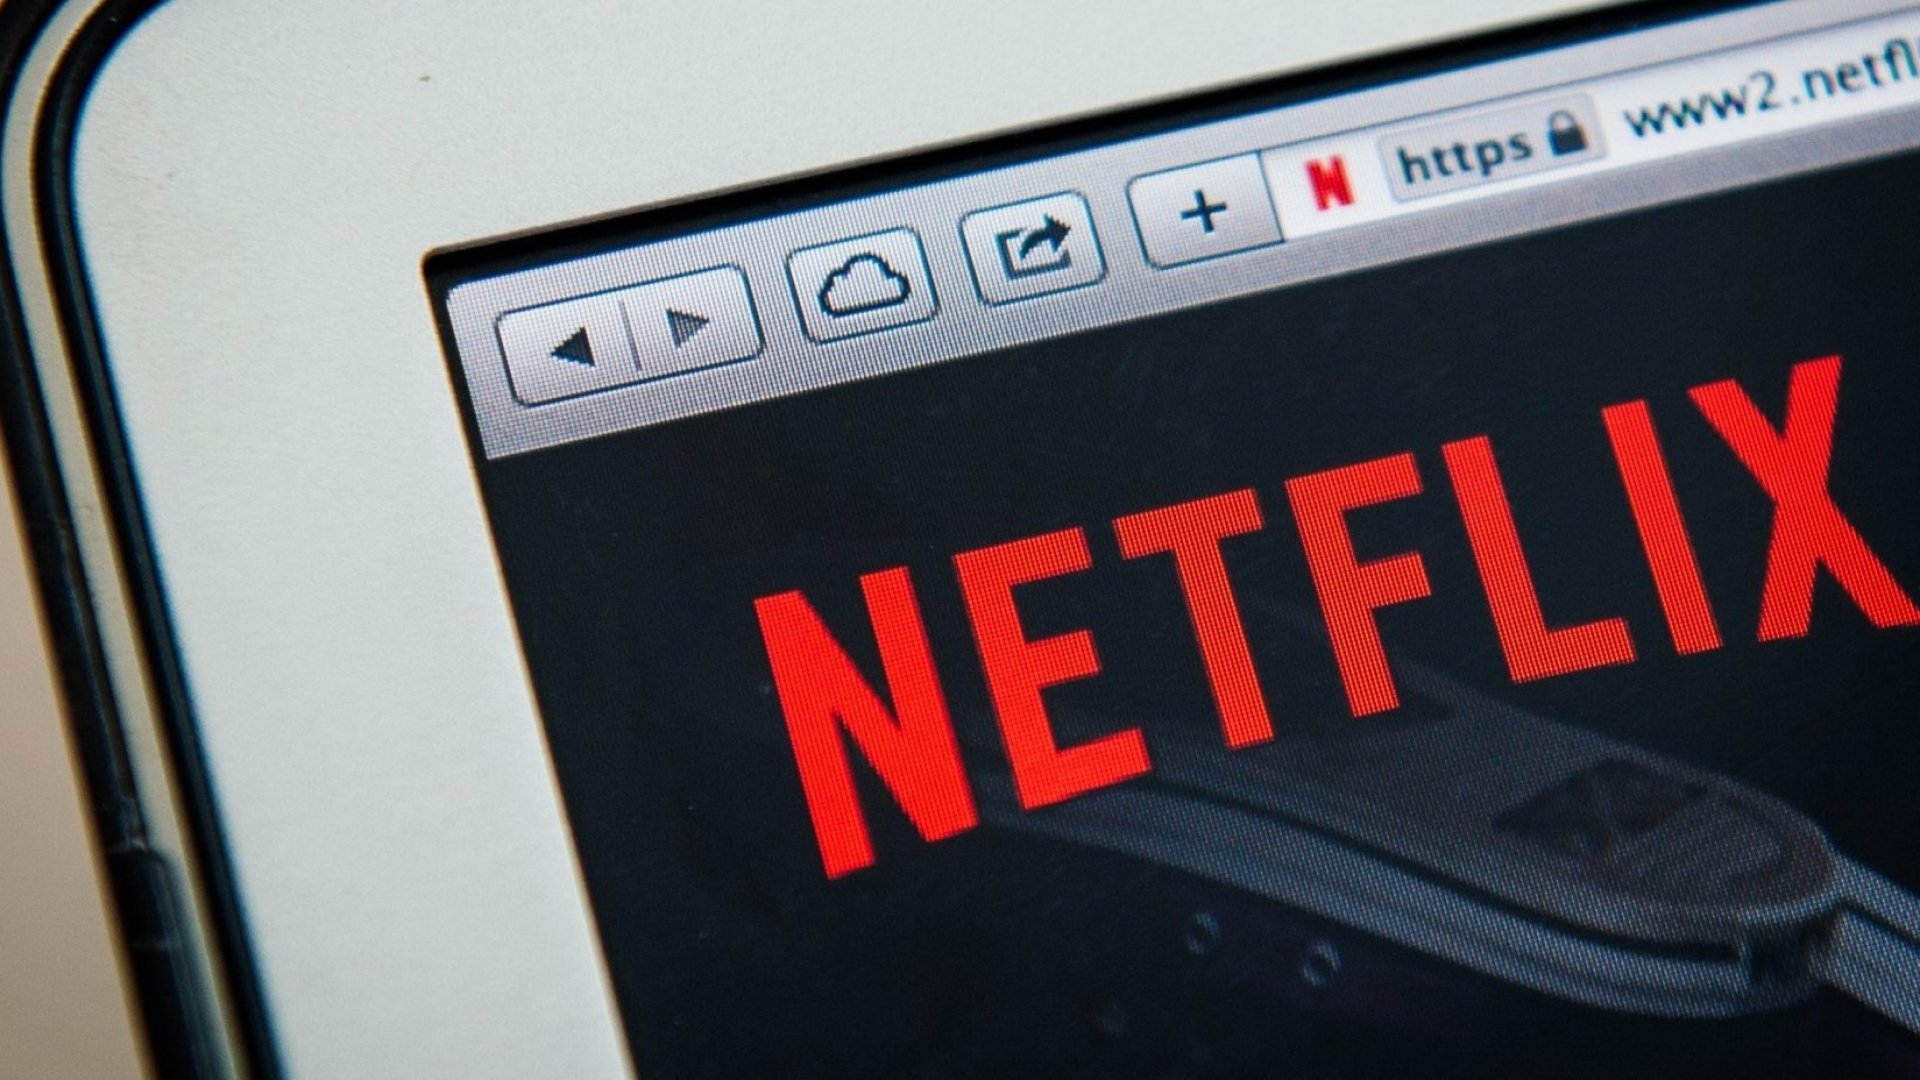 Netflix Just Made a Big, Bold Change. Is It Really Smart or Suicidal?